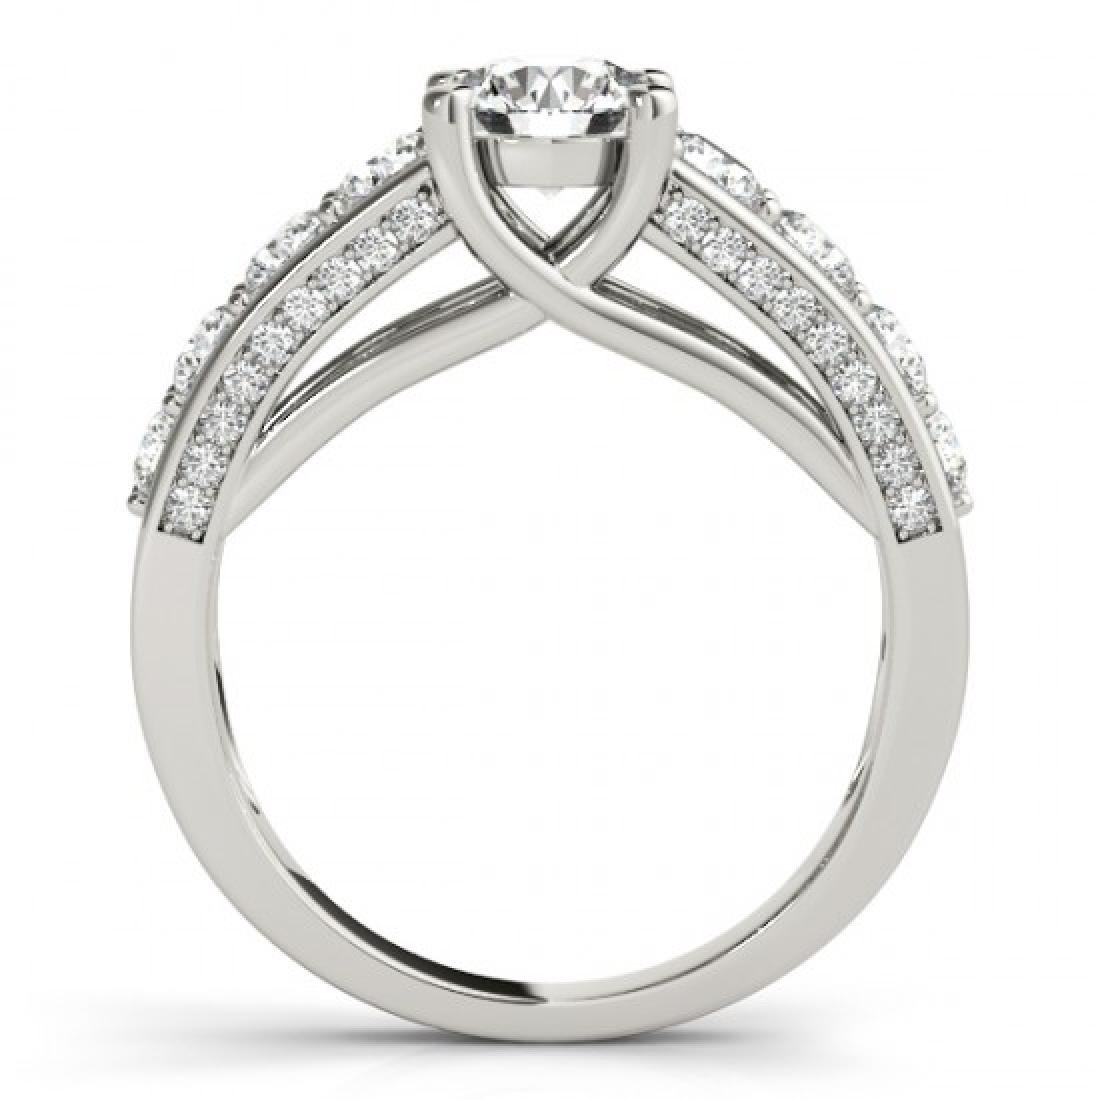 3.05 CTW Certified VS/SI Diamond Solitaire Ring 14K - 2